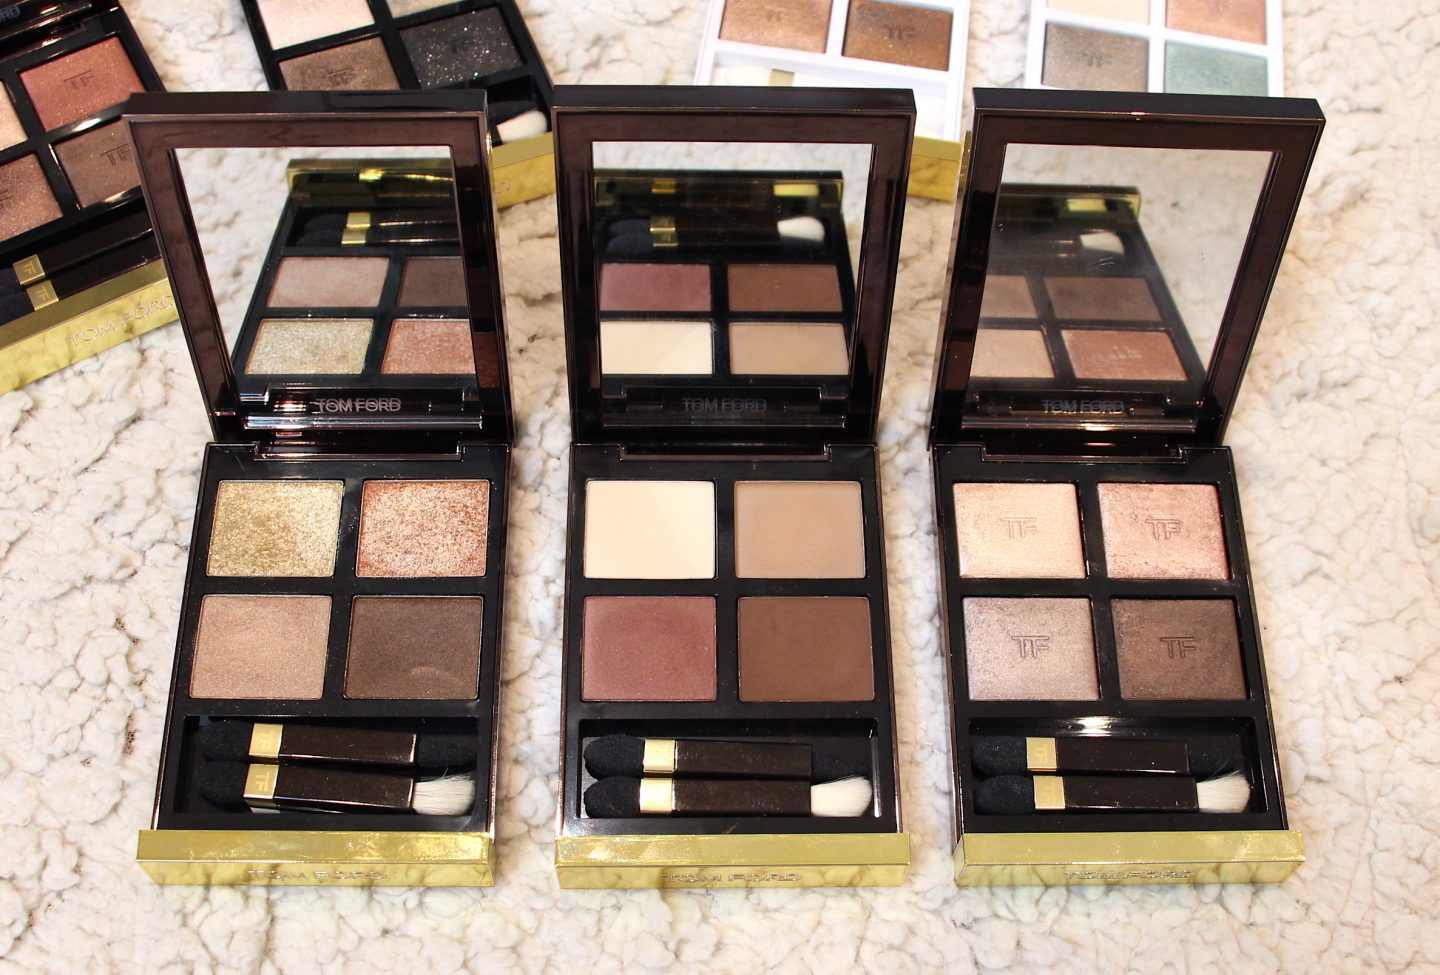 Tom Ford Eye Quads Golden Mink, Cocoa Mirage, Nude Dip